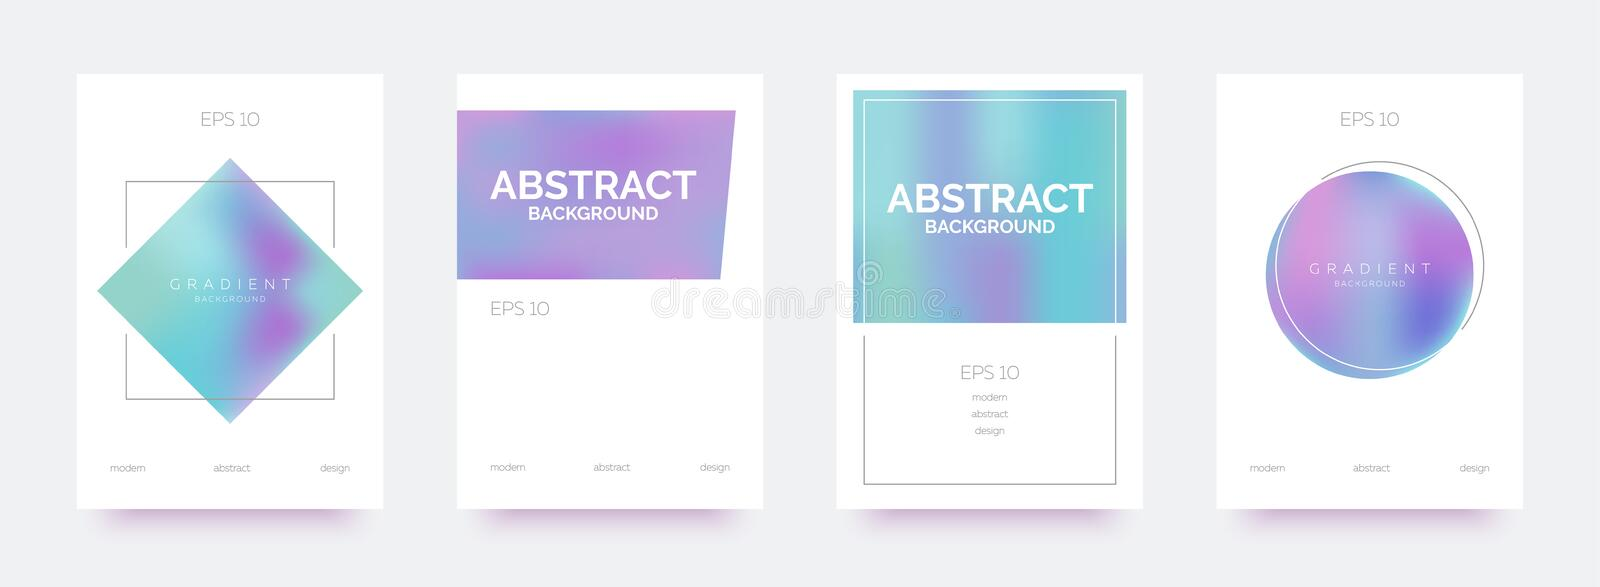 Holographic trendy banners, brochures, flyers, backgrounds with abstract gradient shapes. vector illustration